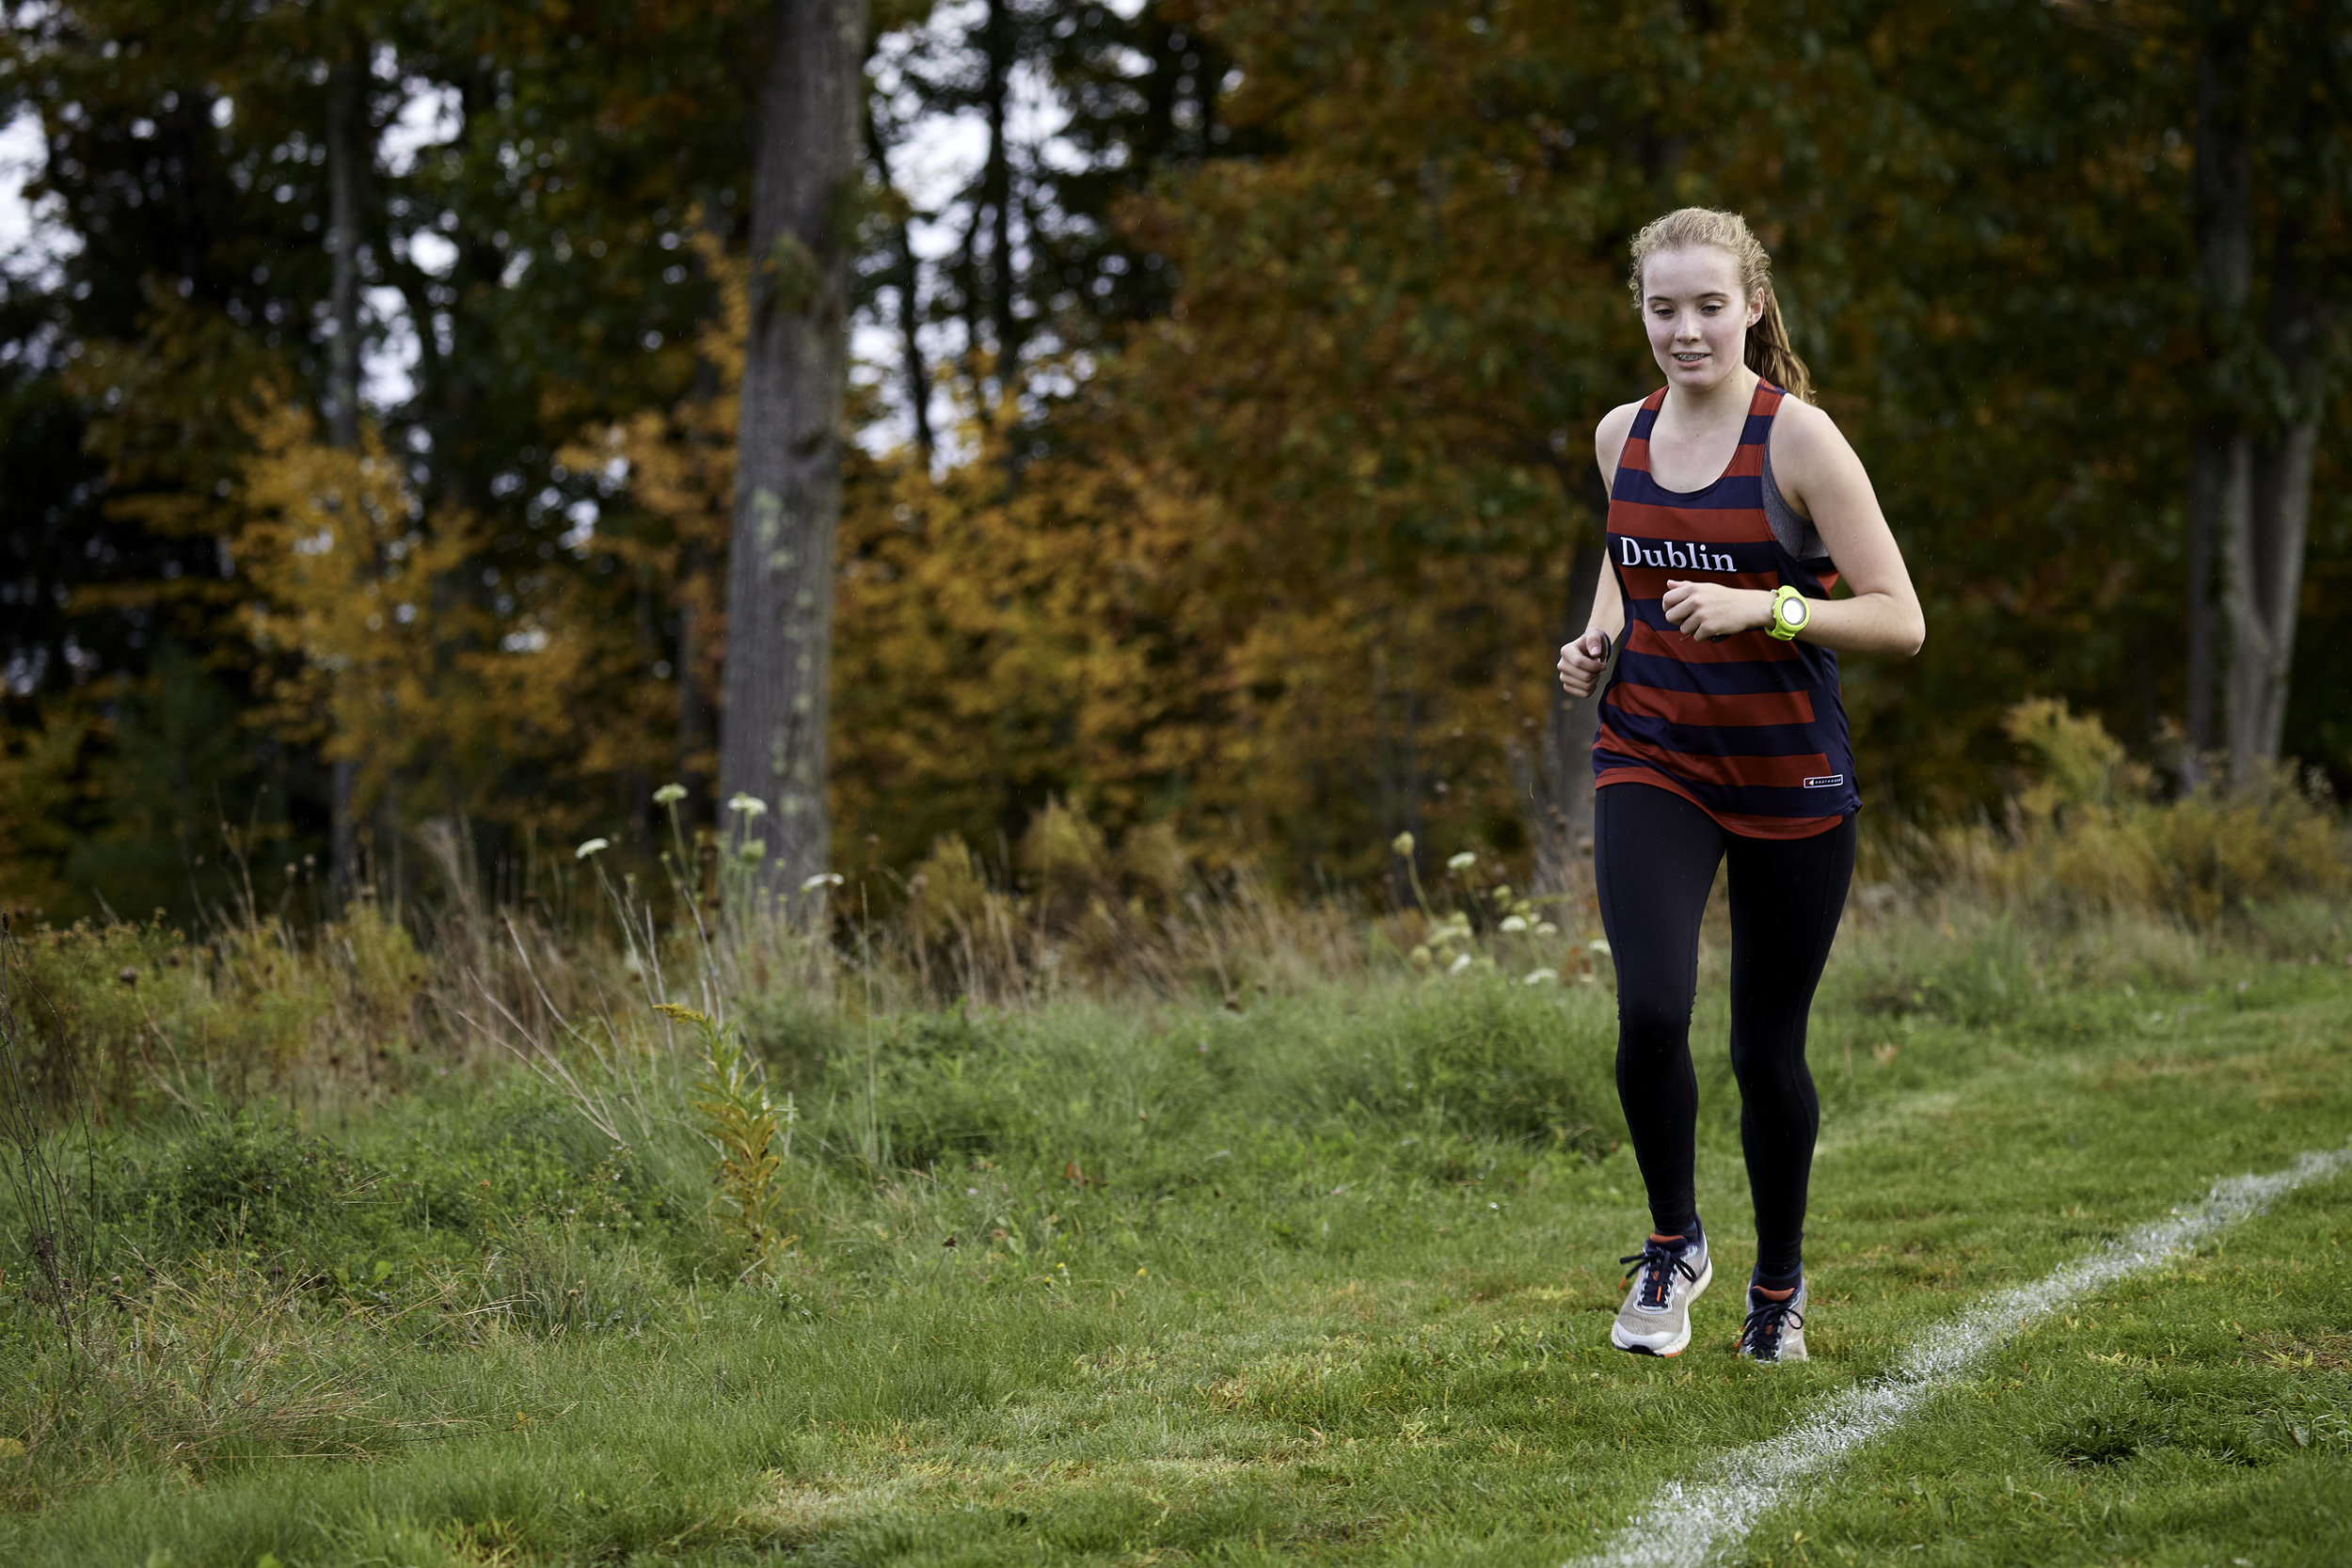 Dublion Invitational - October 12, 2018 - 136577.jpg